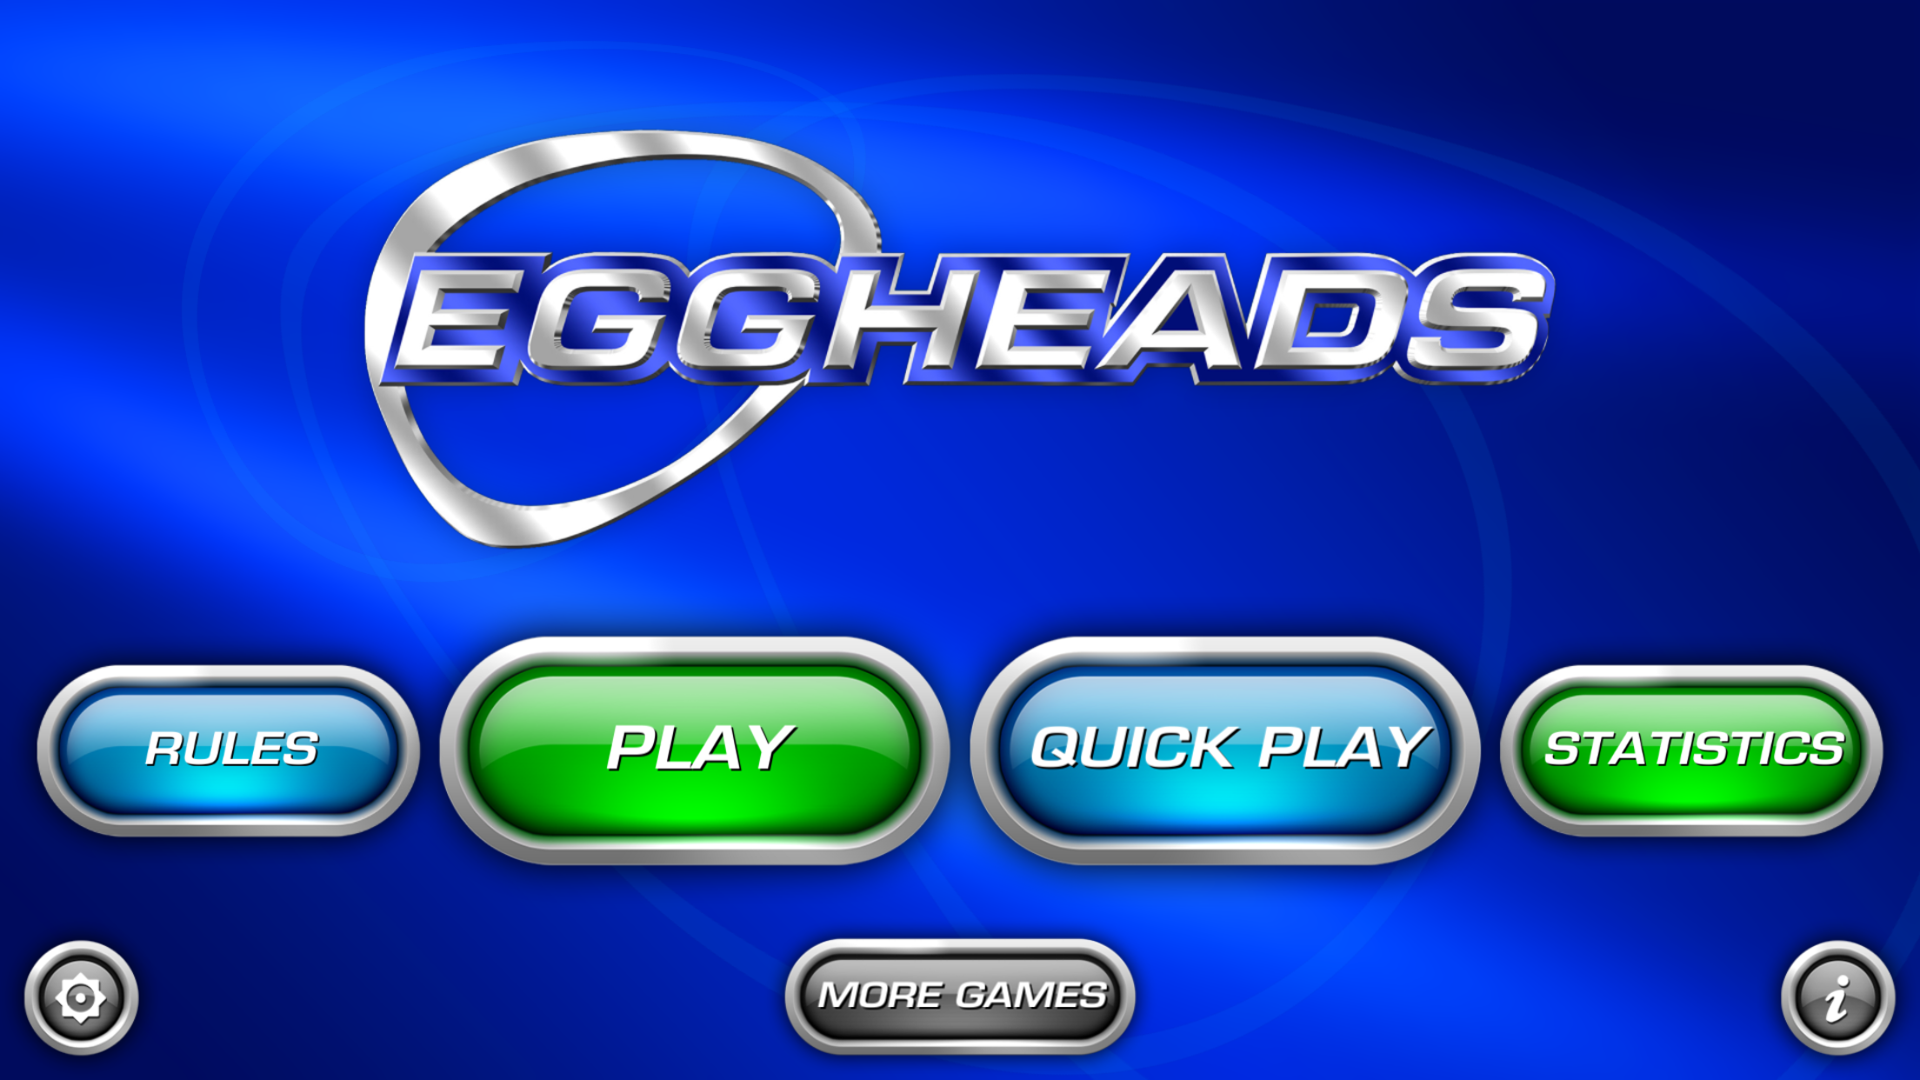 Eggheads: Amazon.co.uk: Appstore for Android